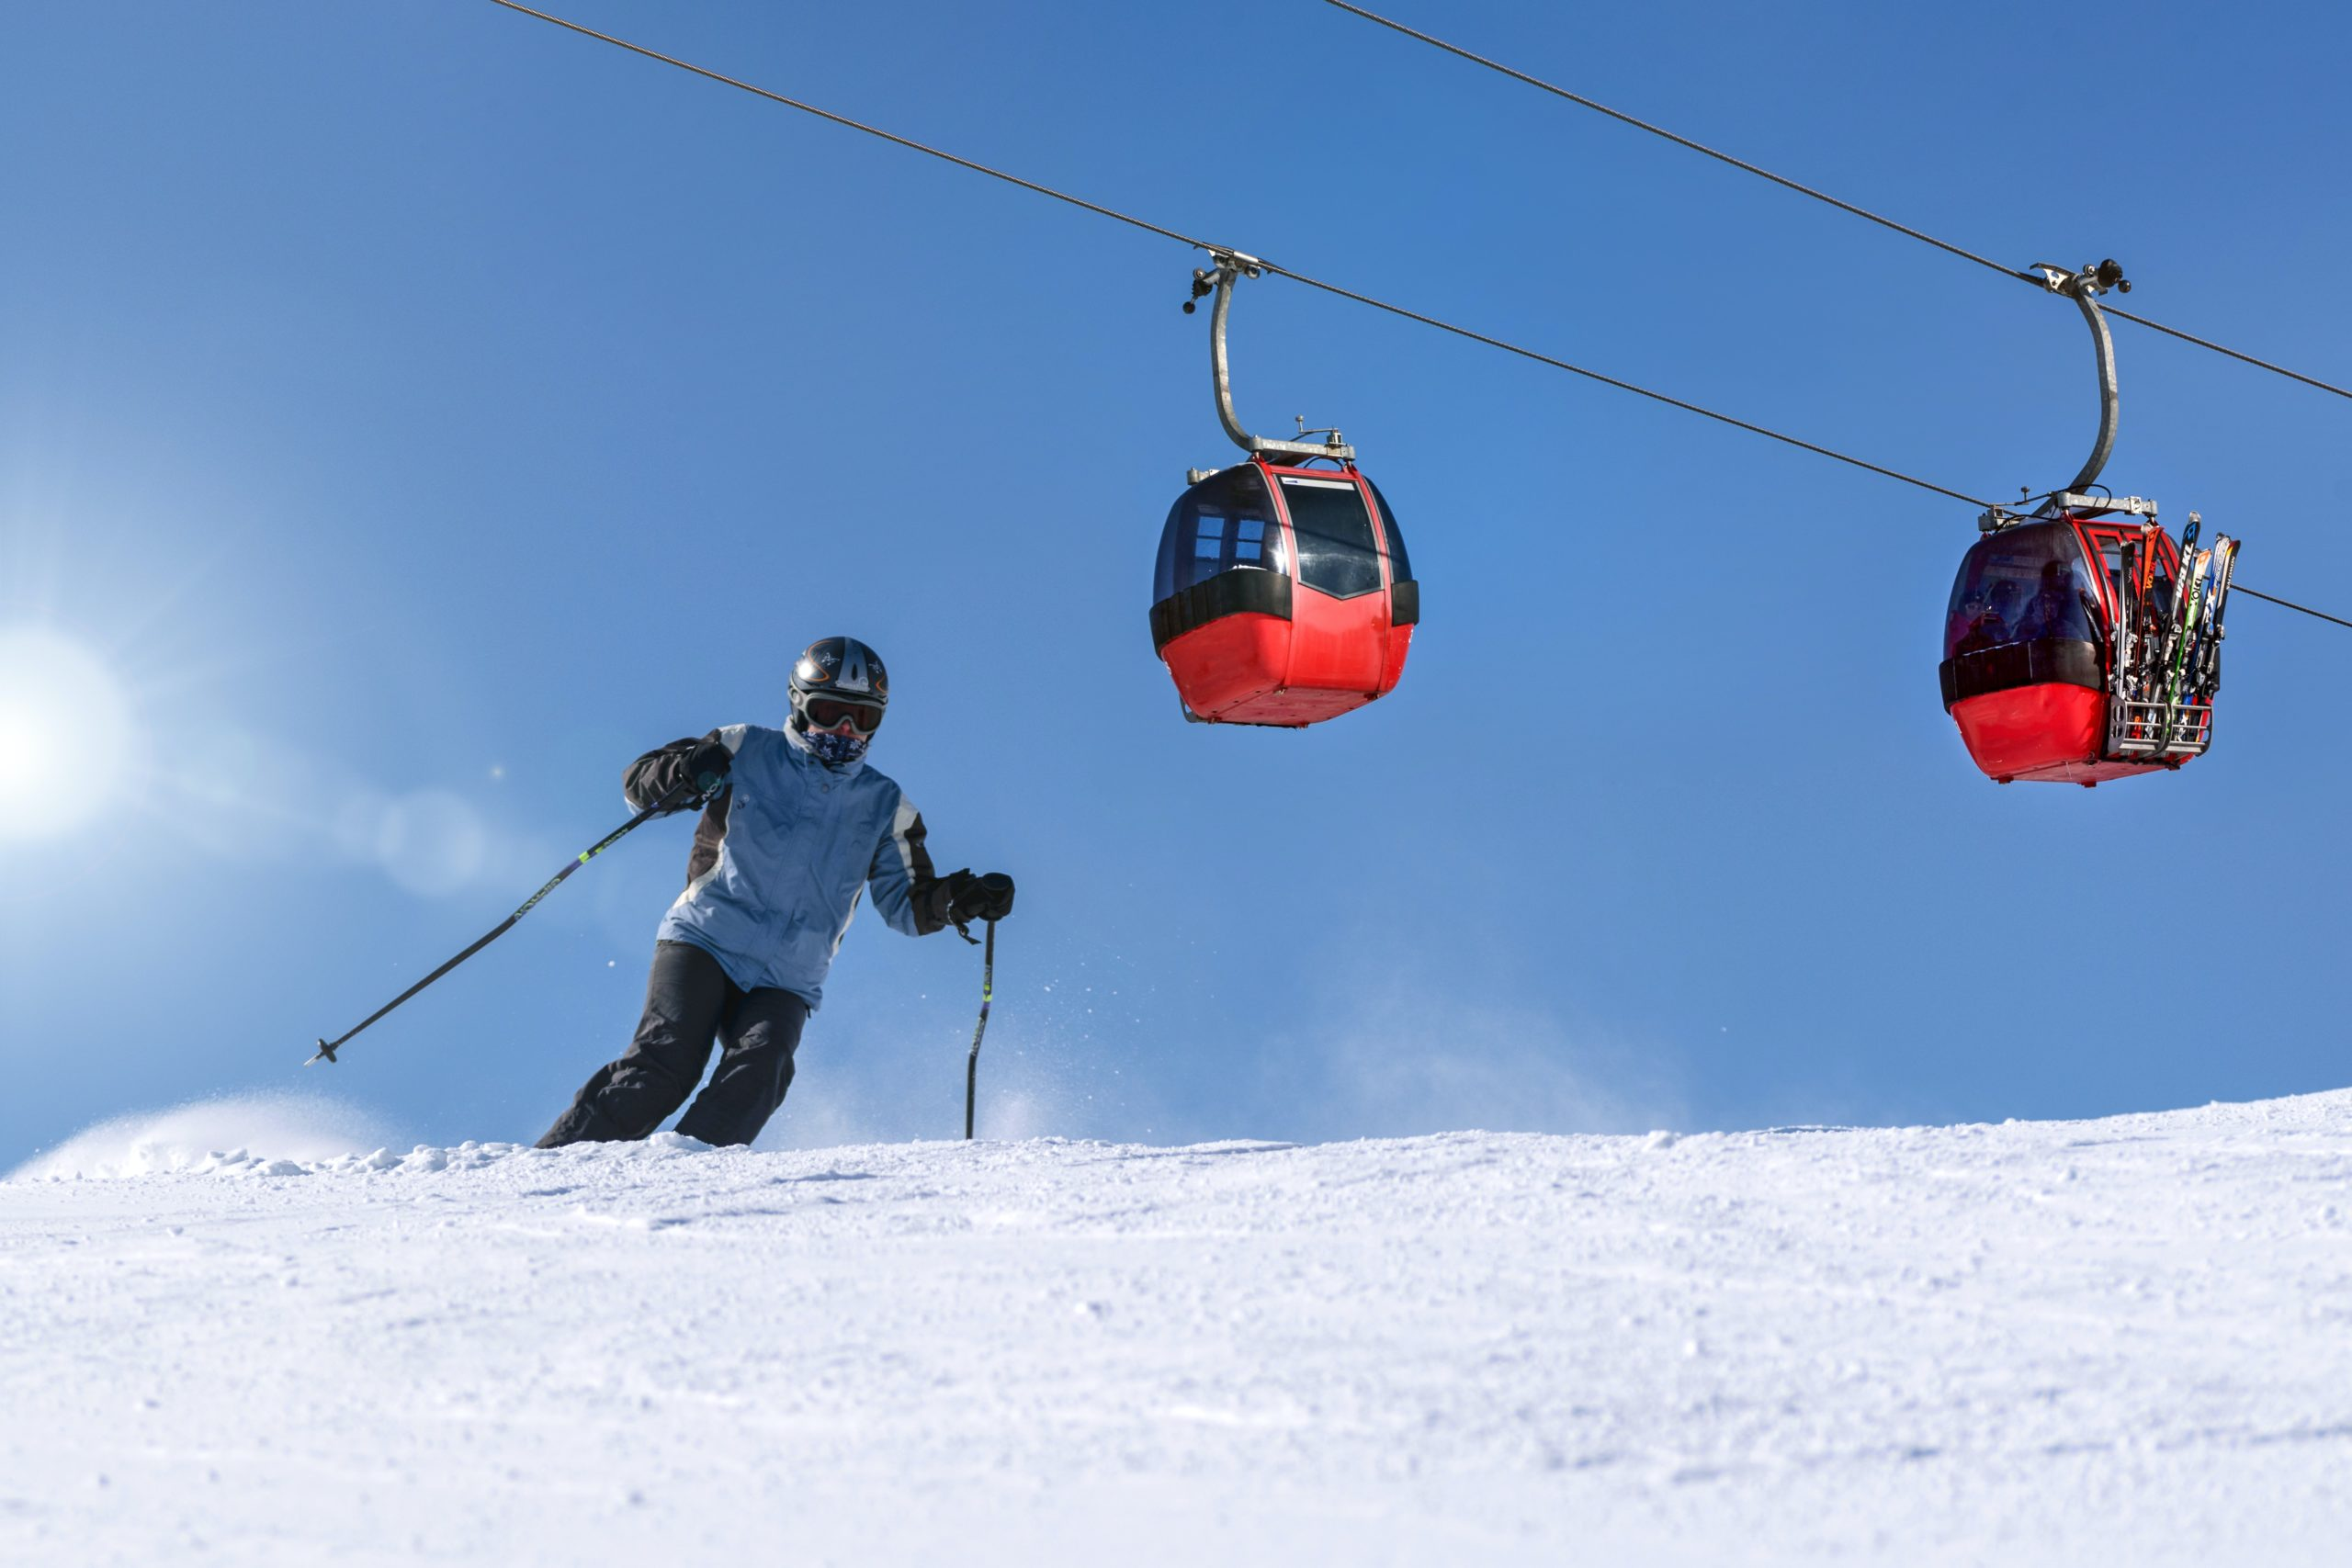 Skiing Beginners - Essential Tips For Beginners